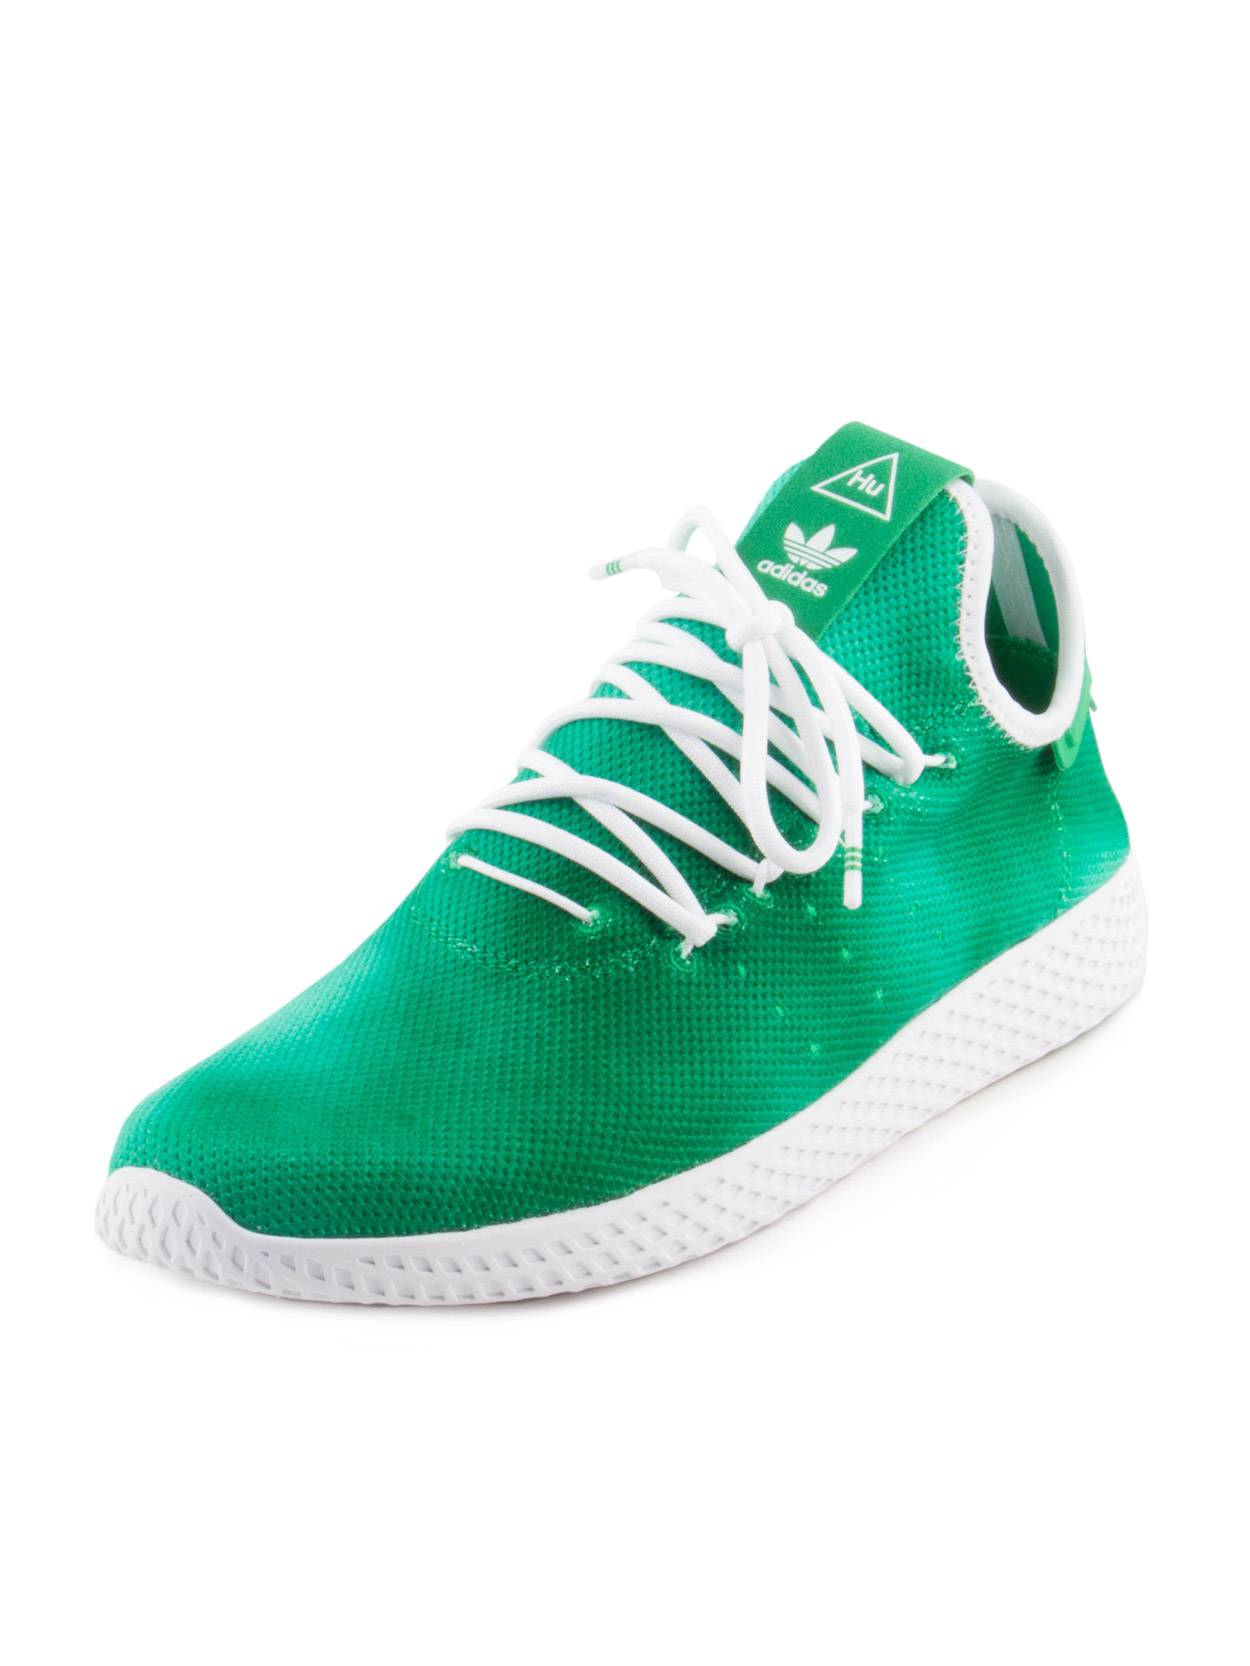 Adidas Mens PW HU HOLI Tennis HU Pharrell Williams Green White DA9619 by Adidas